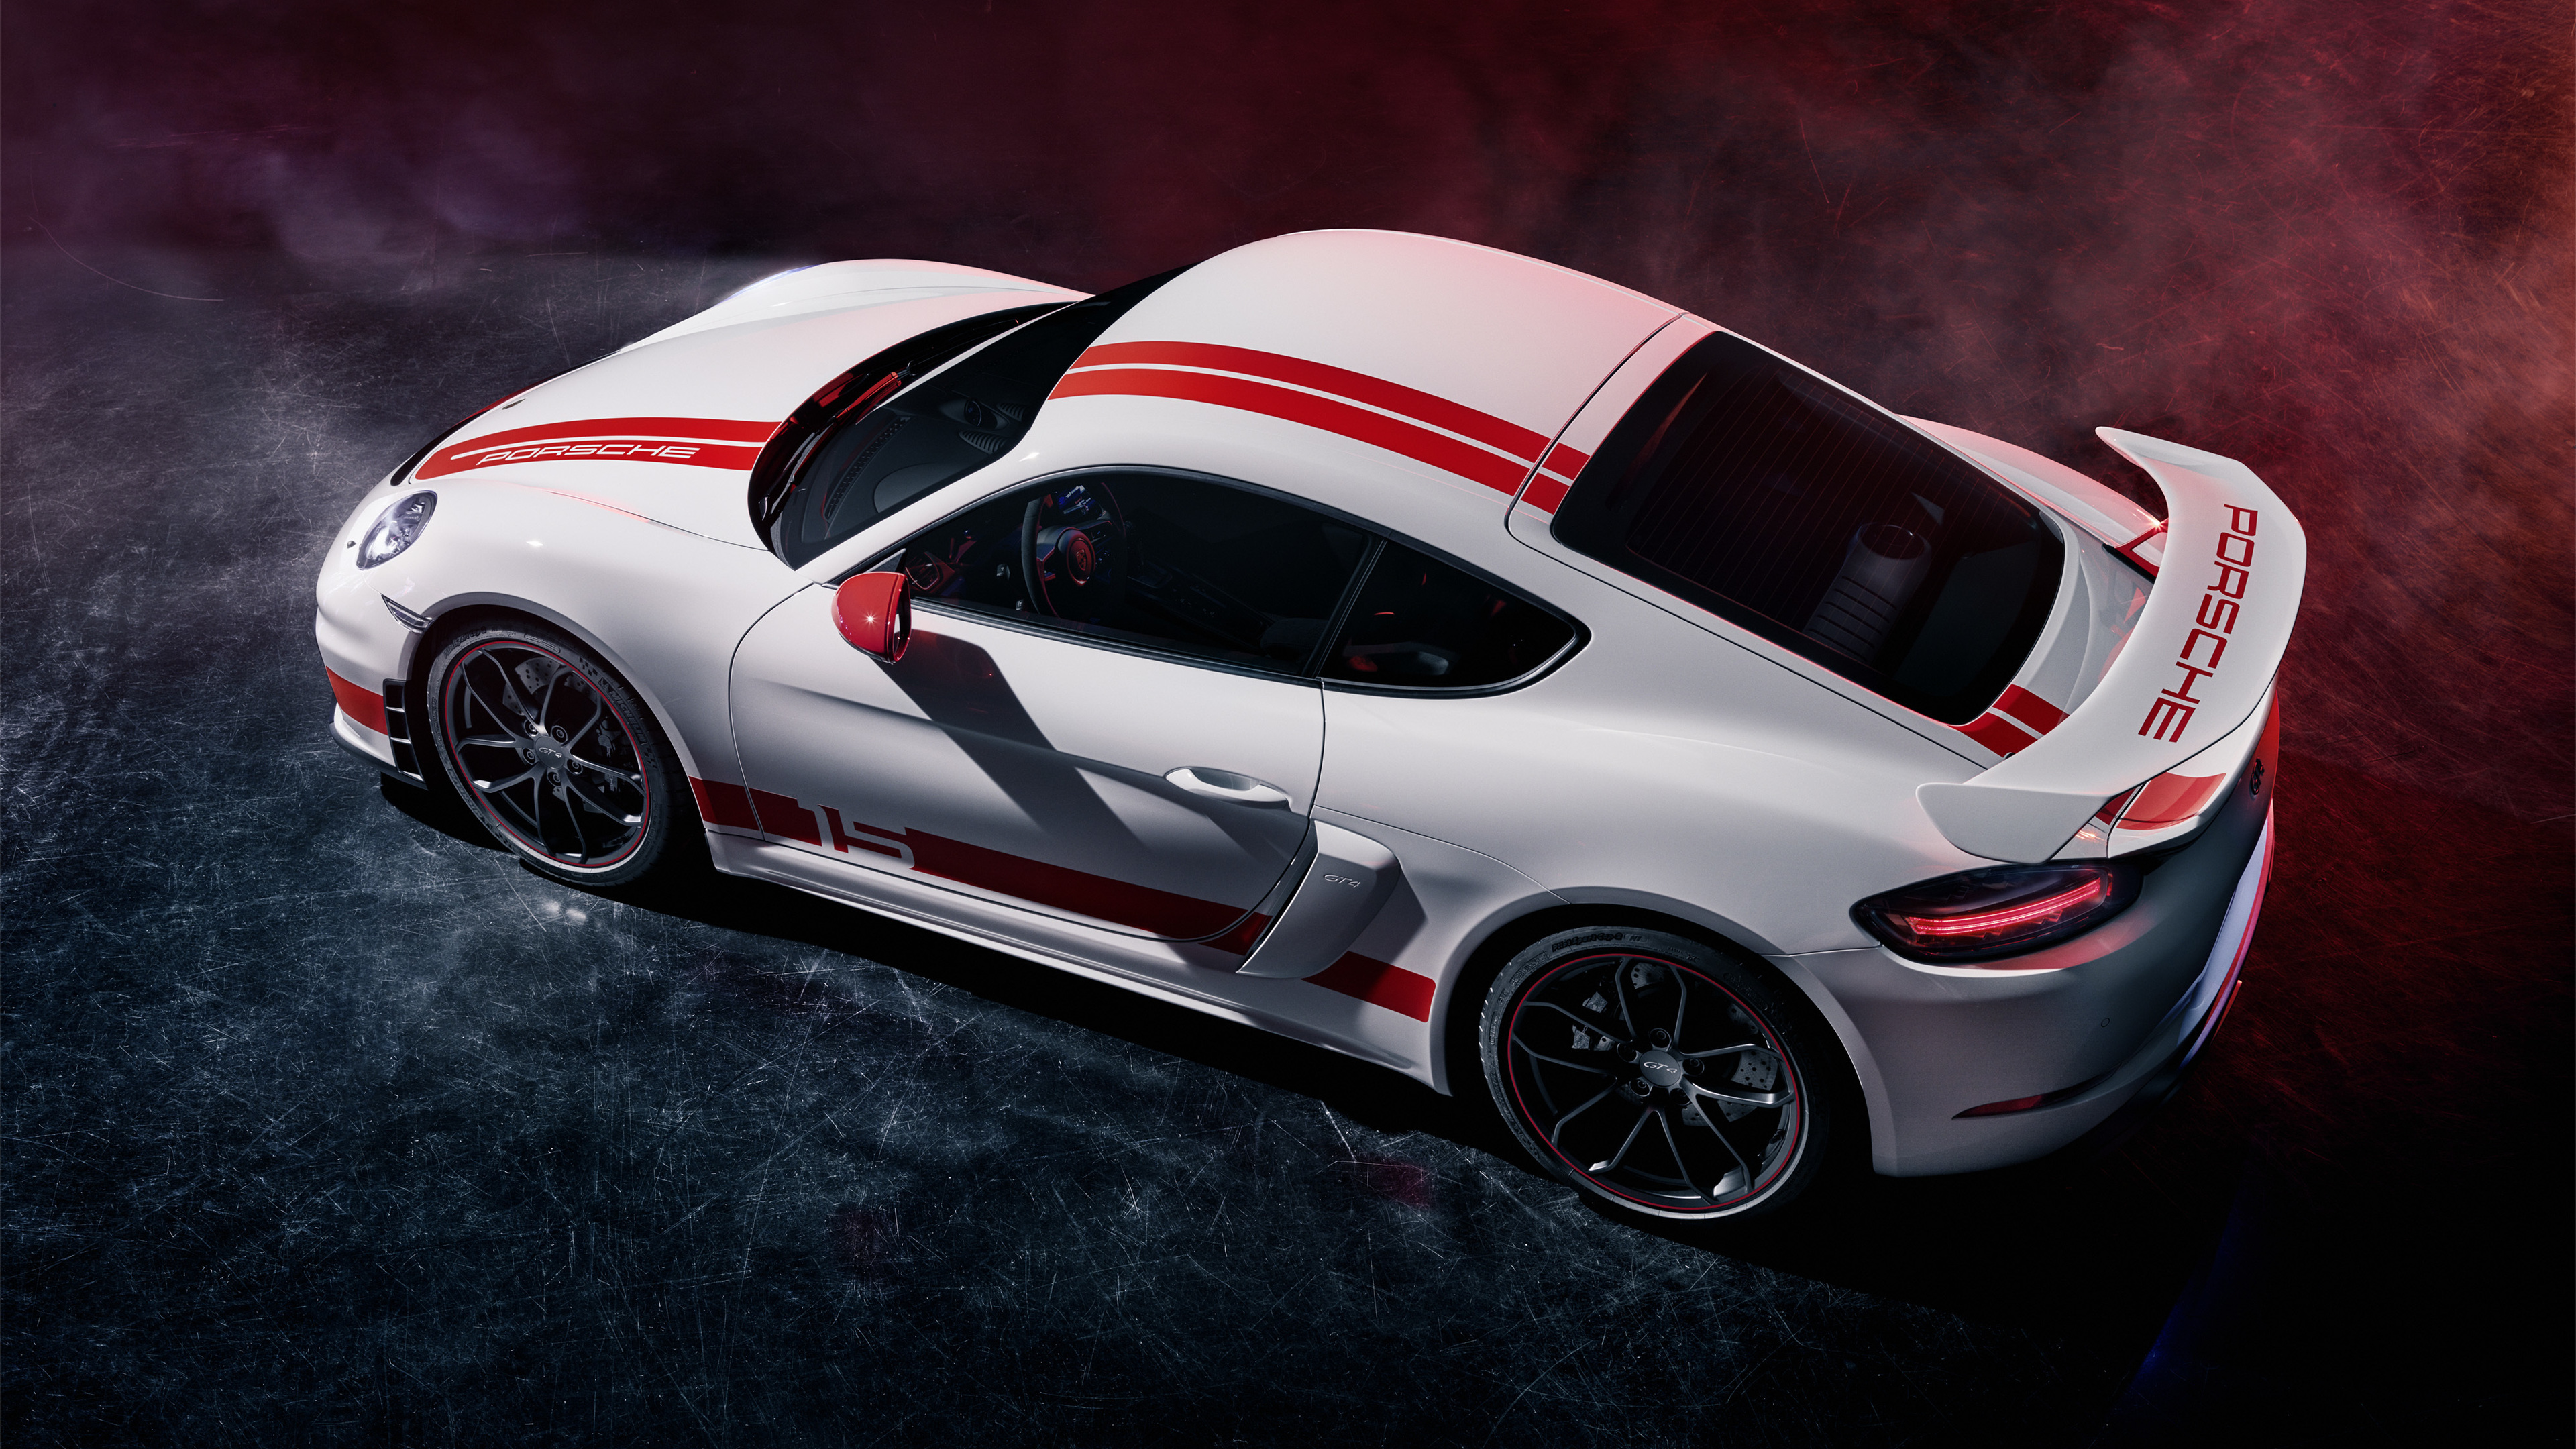 porsche 718 cayman gt4 sports cup edition 2019 side 1572660979 - Porsche 718 Cayman GT4 Sports Cup Edition 2019 Side - porsche wallpapers, porsche 718 wallpapers, hd-wallpapers, cars wallpapers, 4k-wallpapers, 2019 cars wallpapers